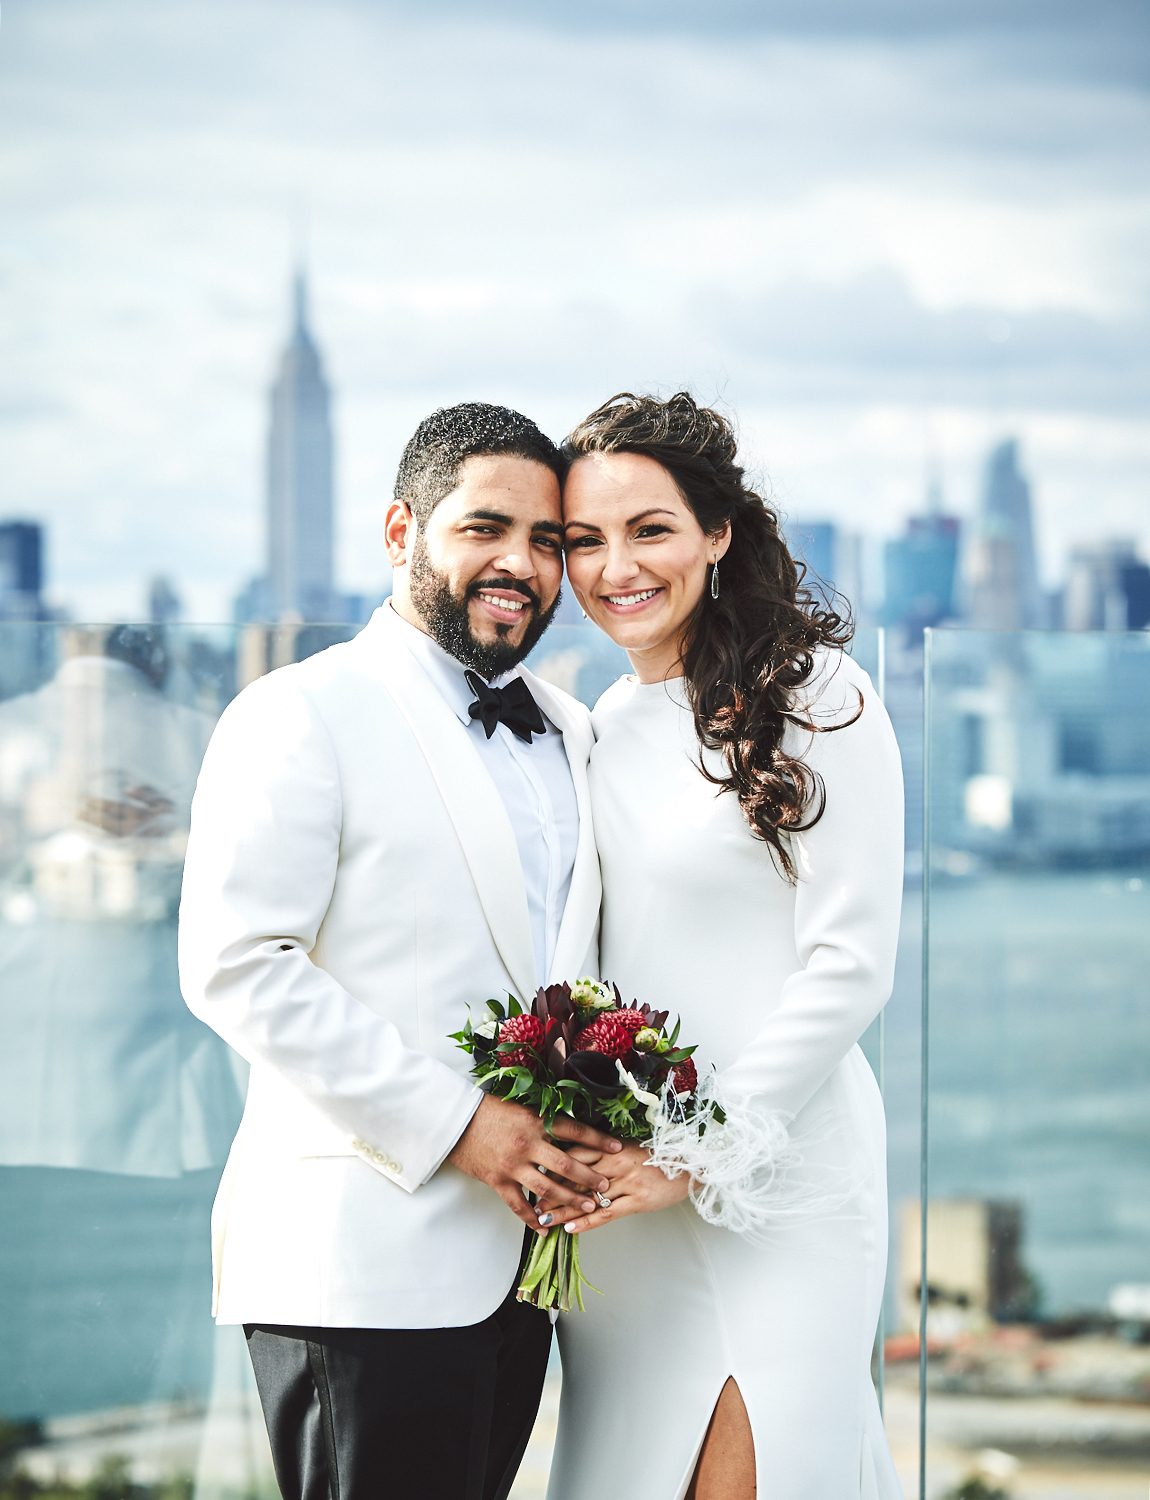 170930_WilliamValeWeddingPhotography_BrooklynWeddingPhotographer_By_BriJohnsonWeddings_0078.jpg